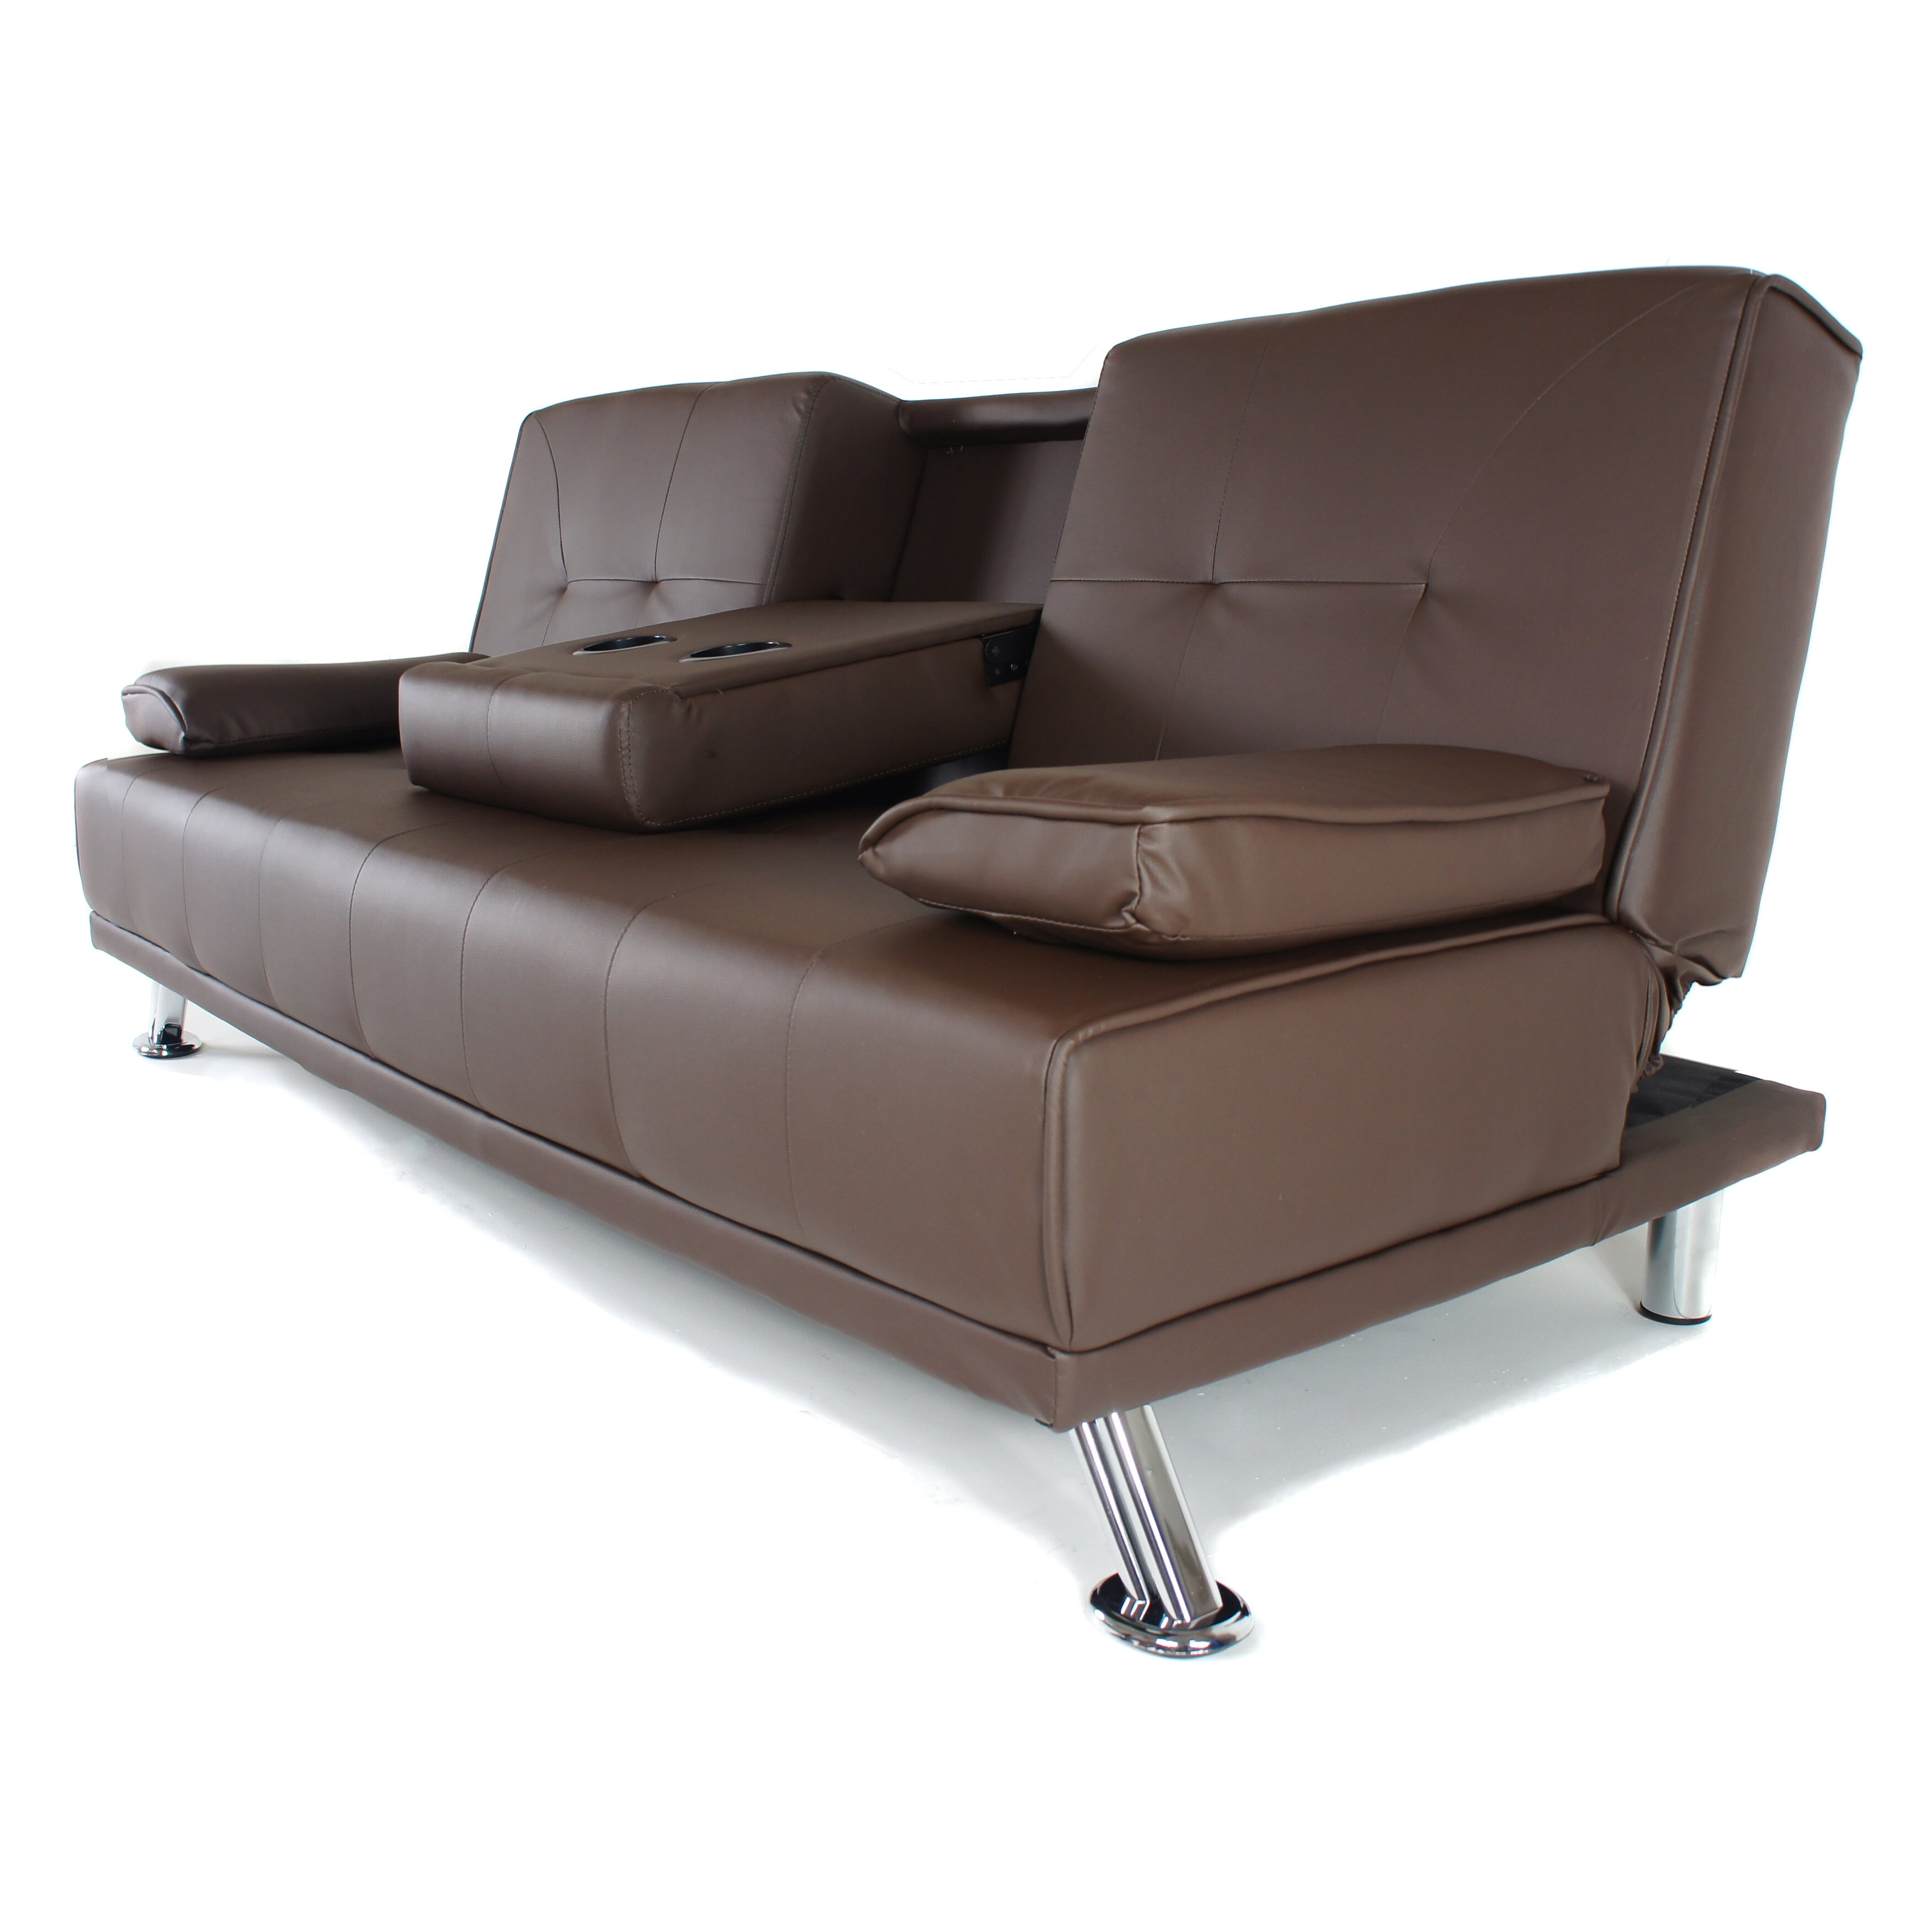 house additions croft 3 seater clic clac sofa bed. Black Bedroom Furniture Sets. Home Design Ideas